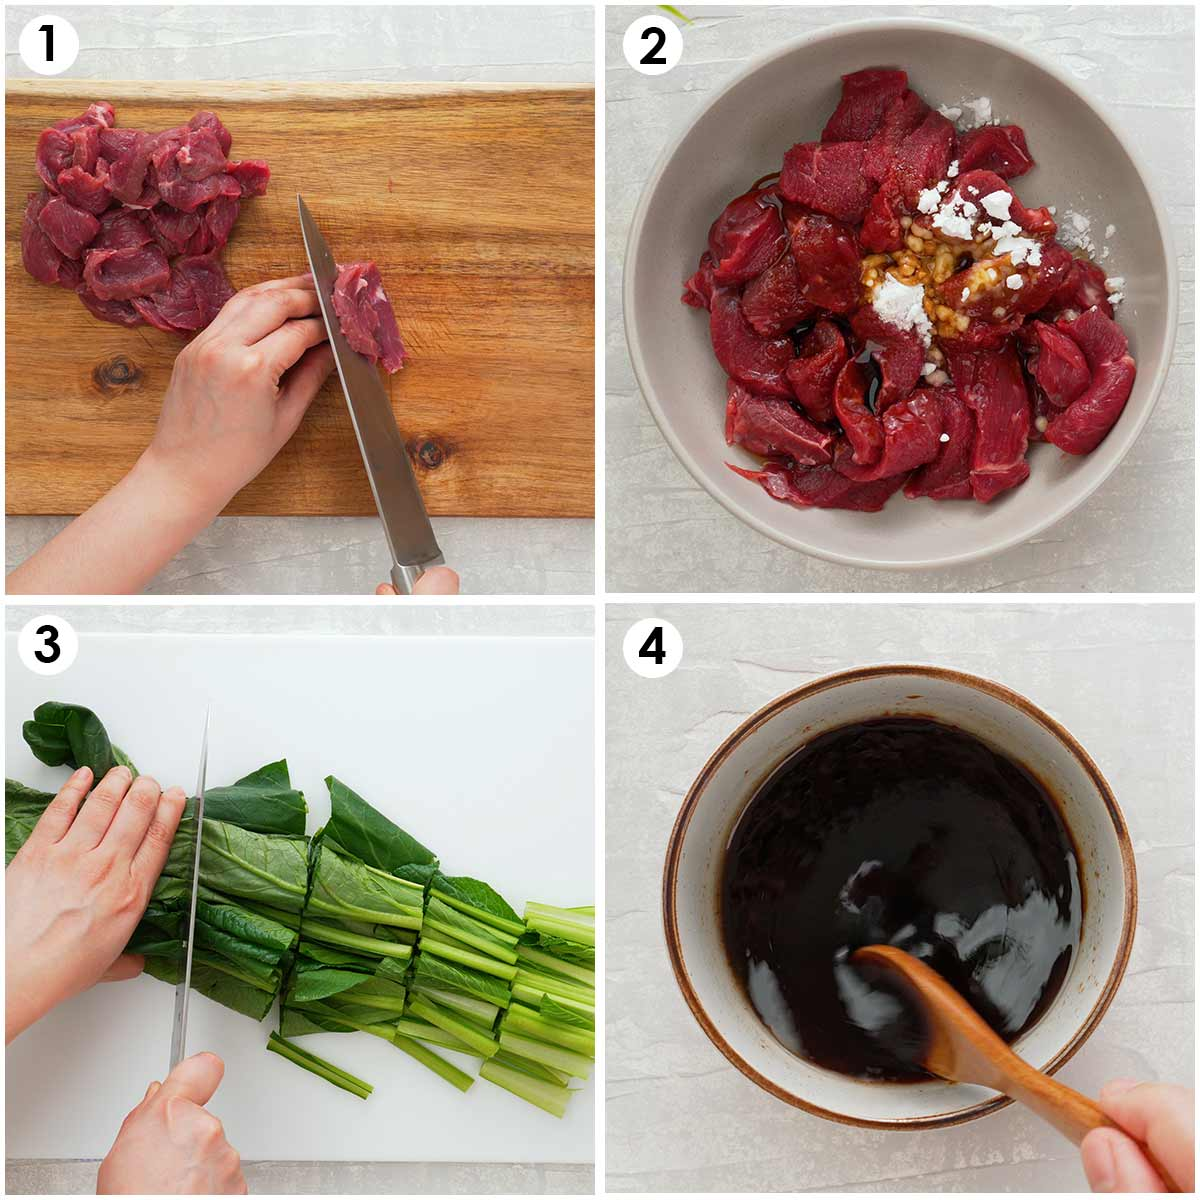 Four image collage showing how to prepare ingredients.